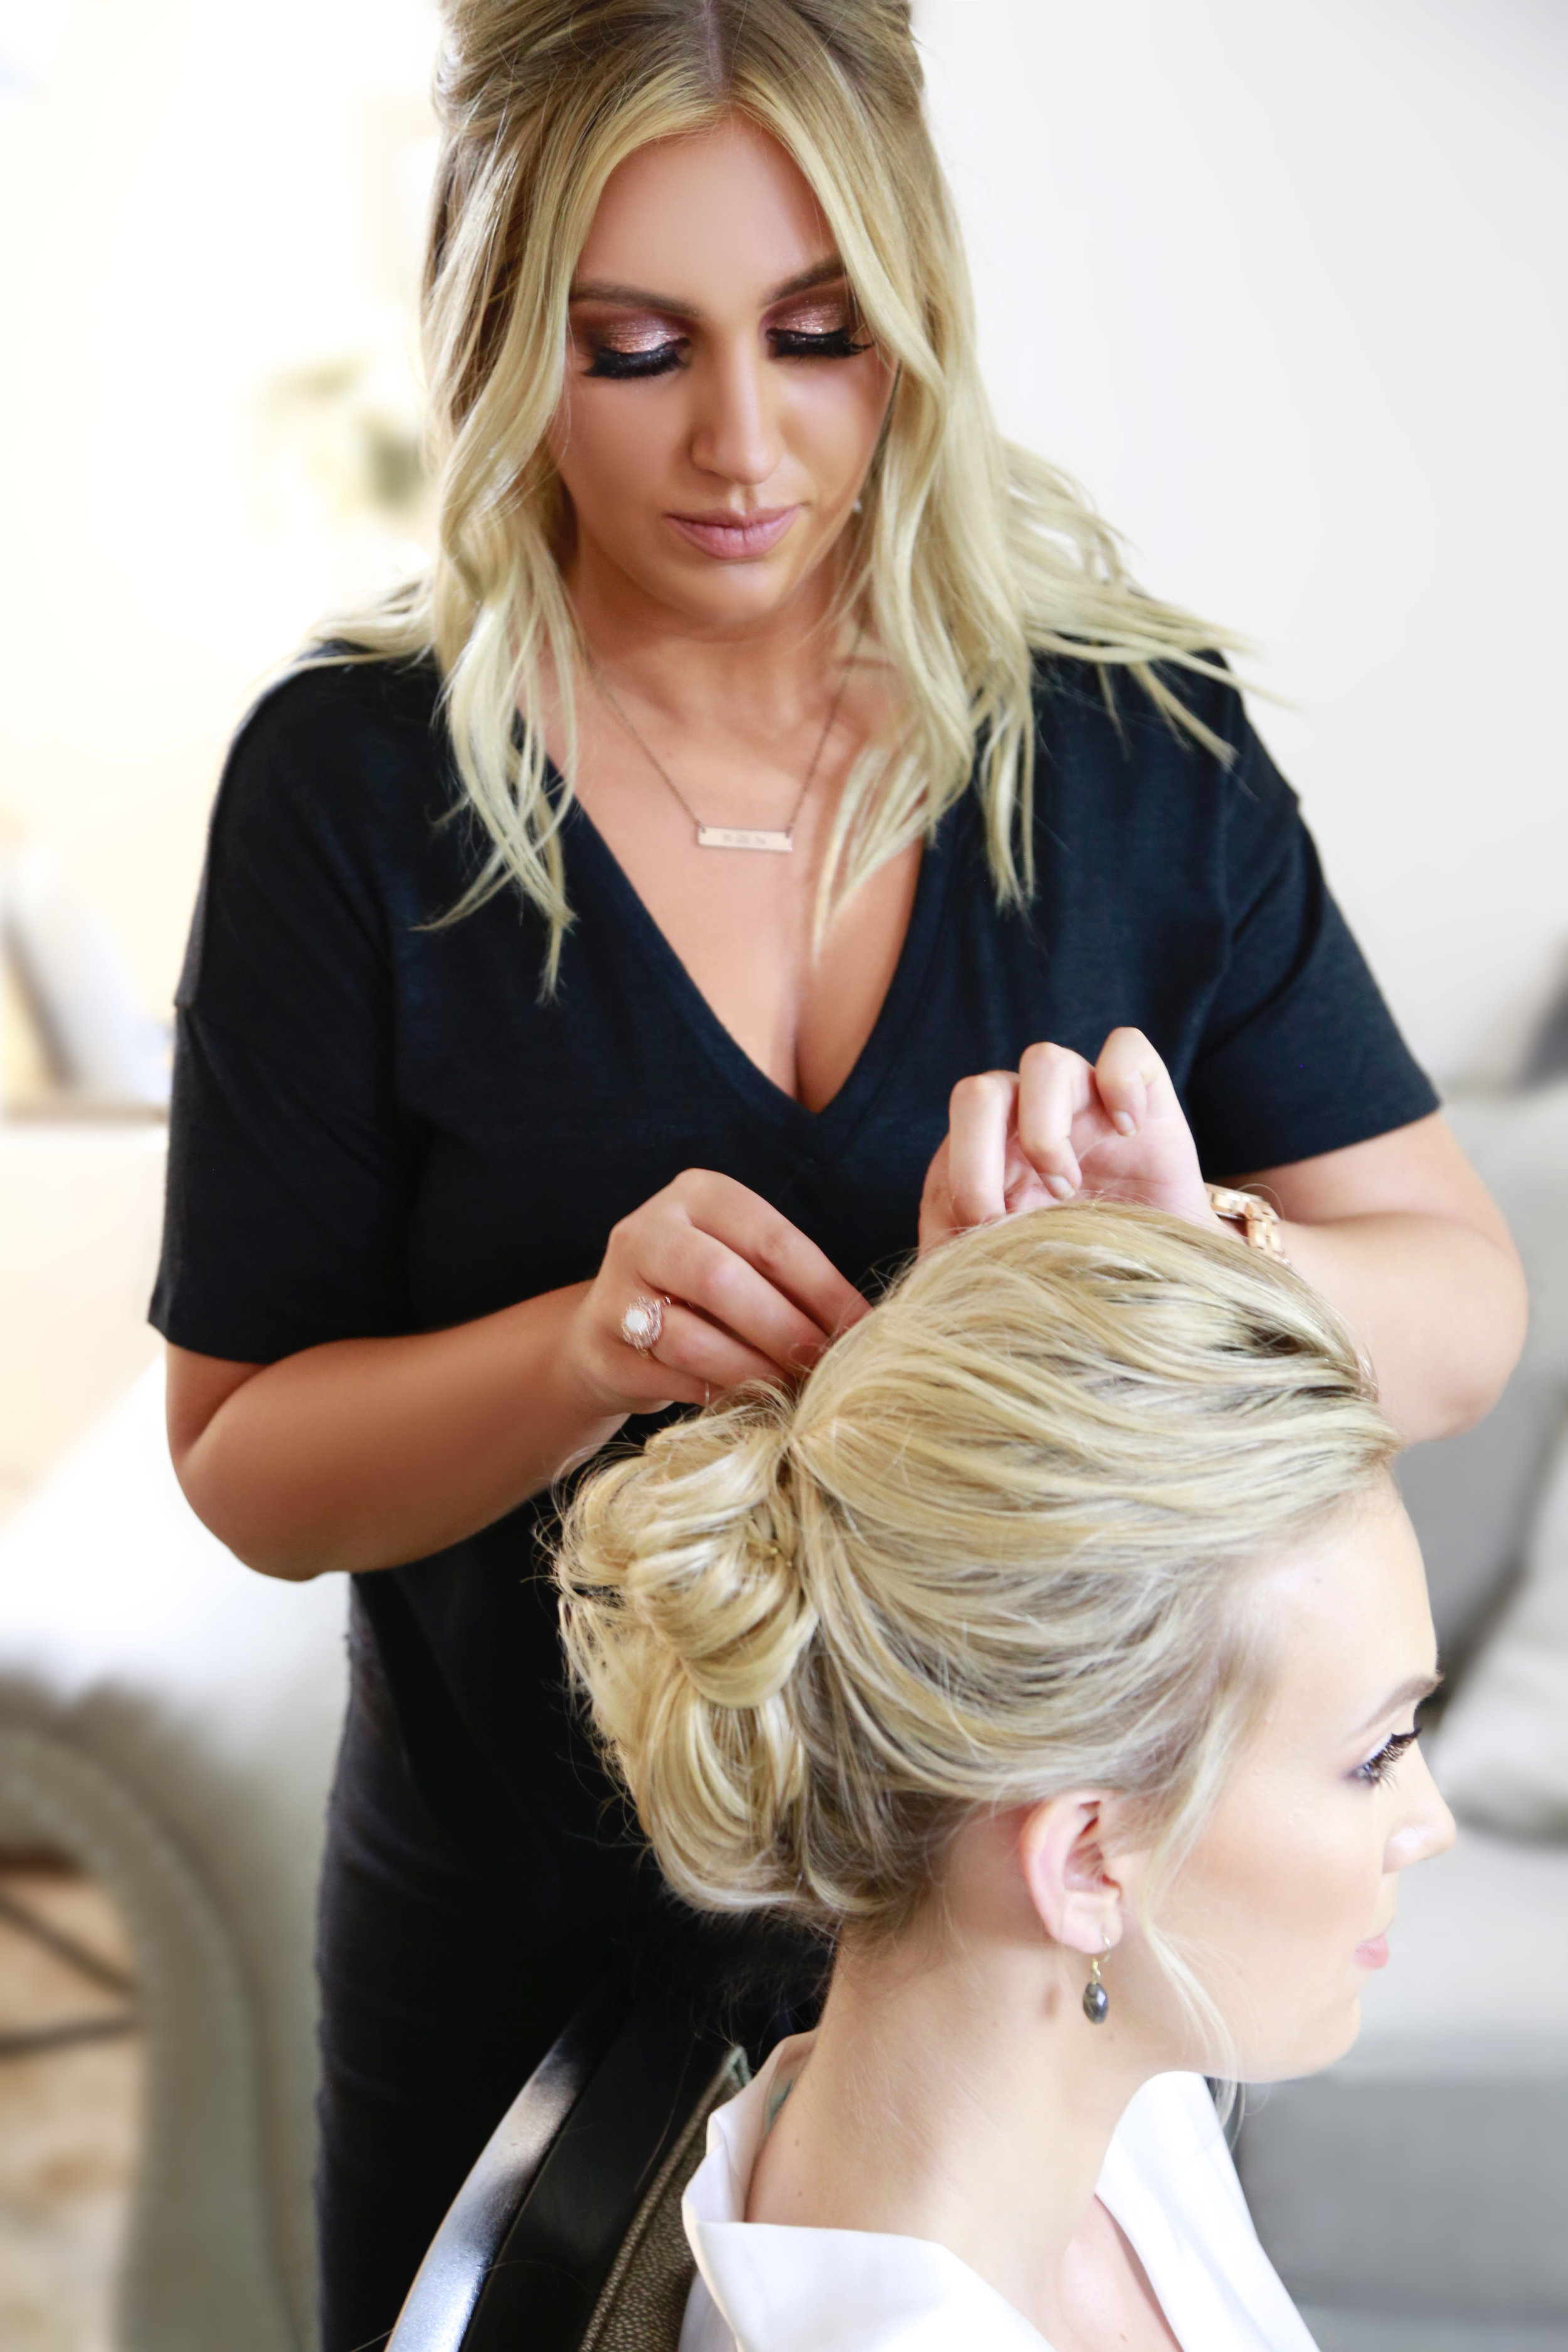 DANI D - Dani has been a featured stylist at Beauty Studio Inc for over 5 years.She specializes in braids, boho, polished hair looks as well as makeupTo view examples of Dani's work, please click on each link below to expand her galleries: